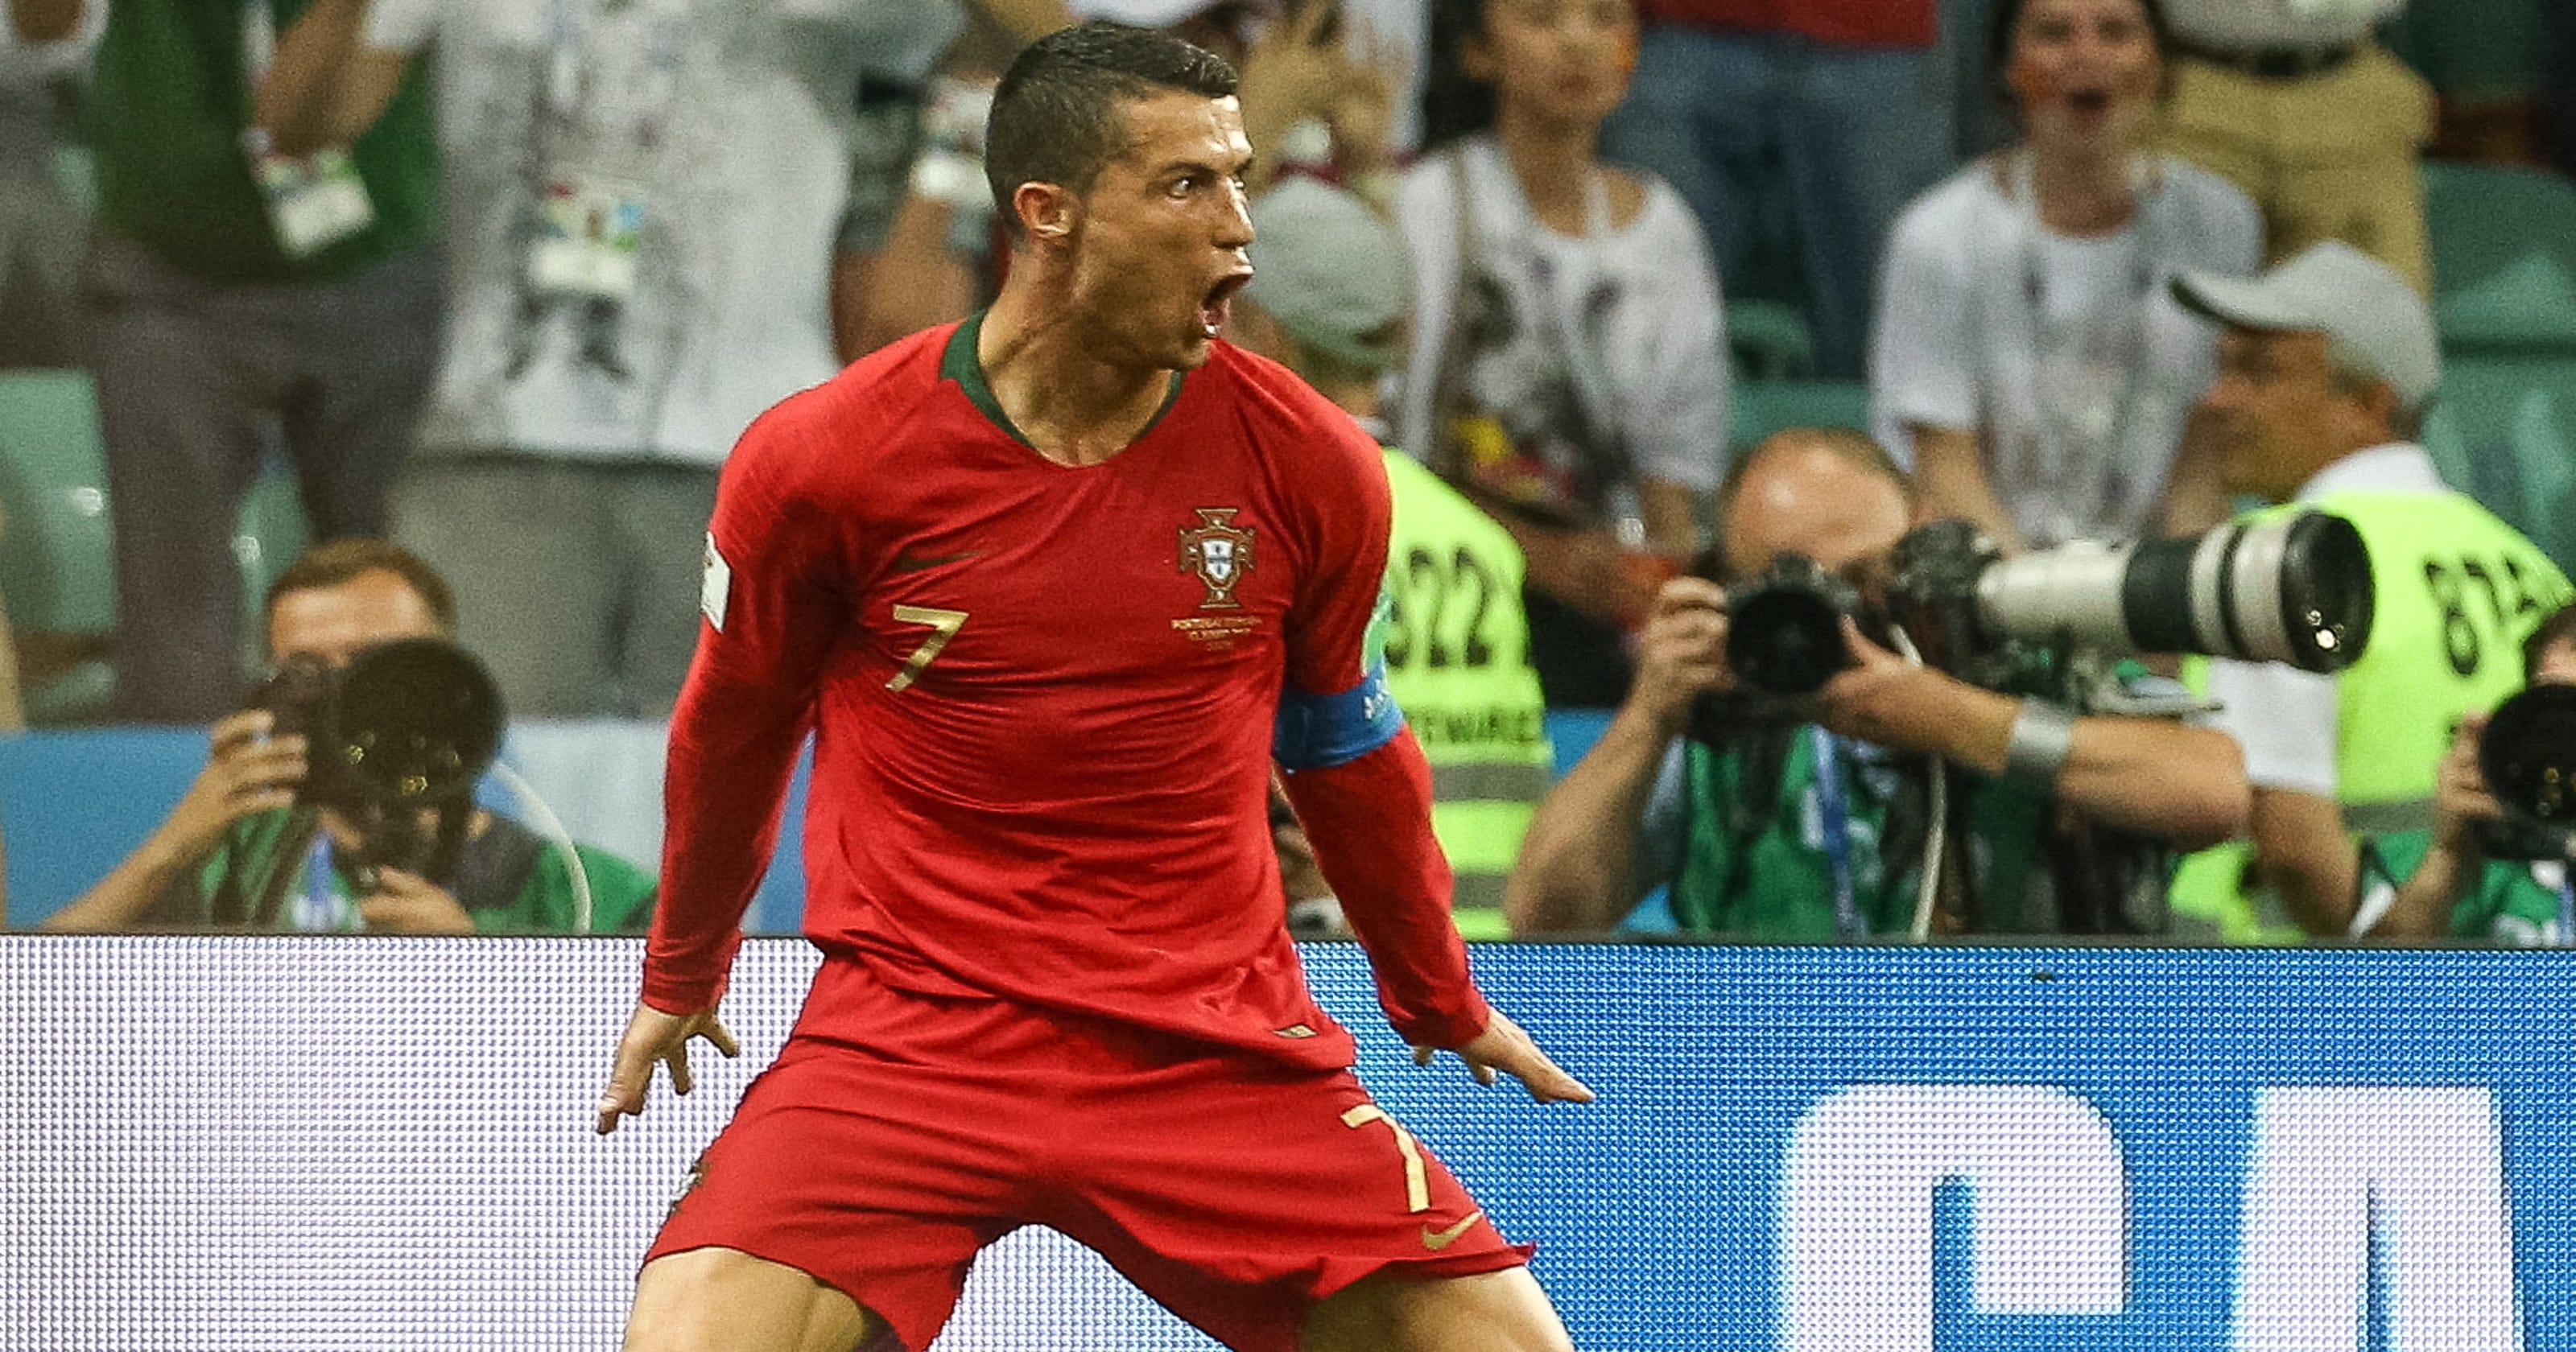 a120cbdc324b World Cup: Ronaldo's hat trick shows why he's loved and hated